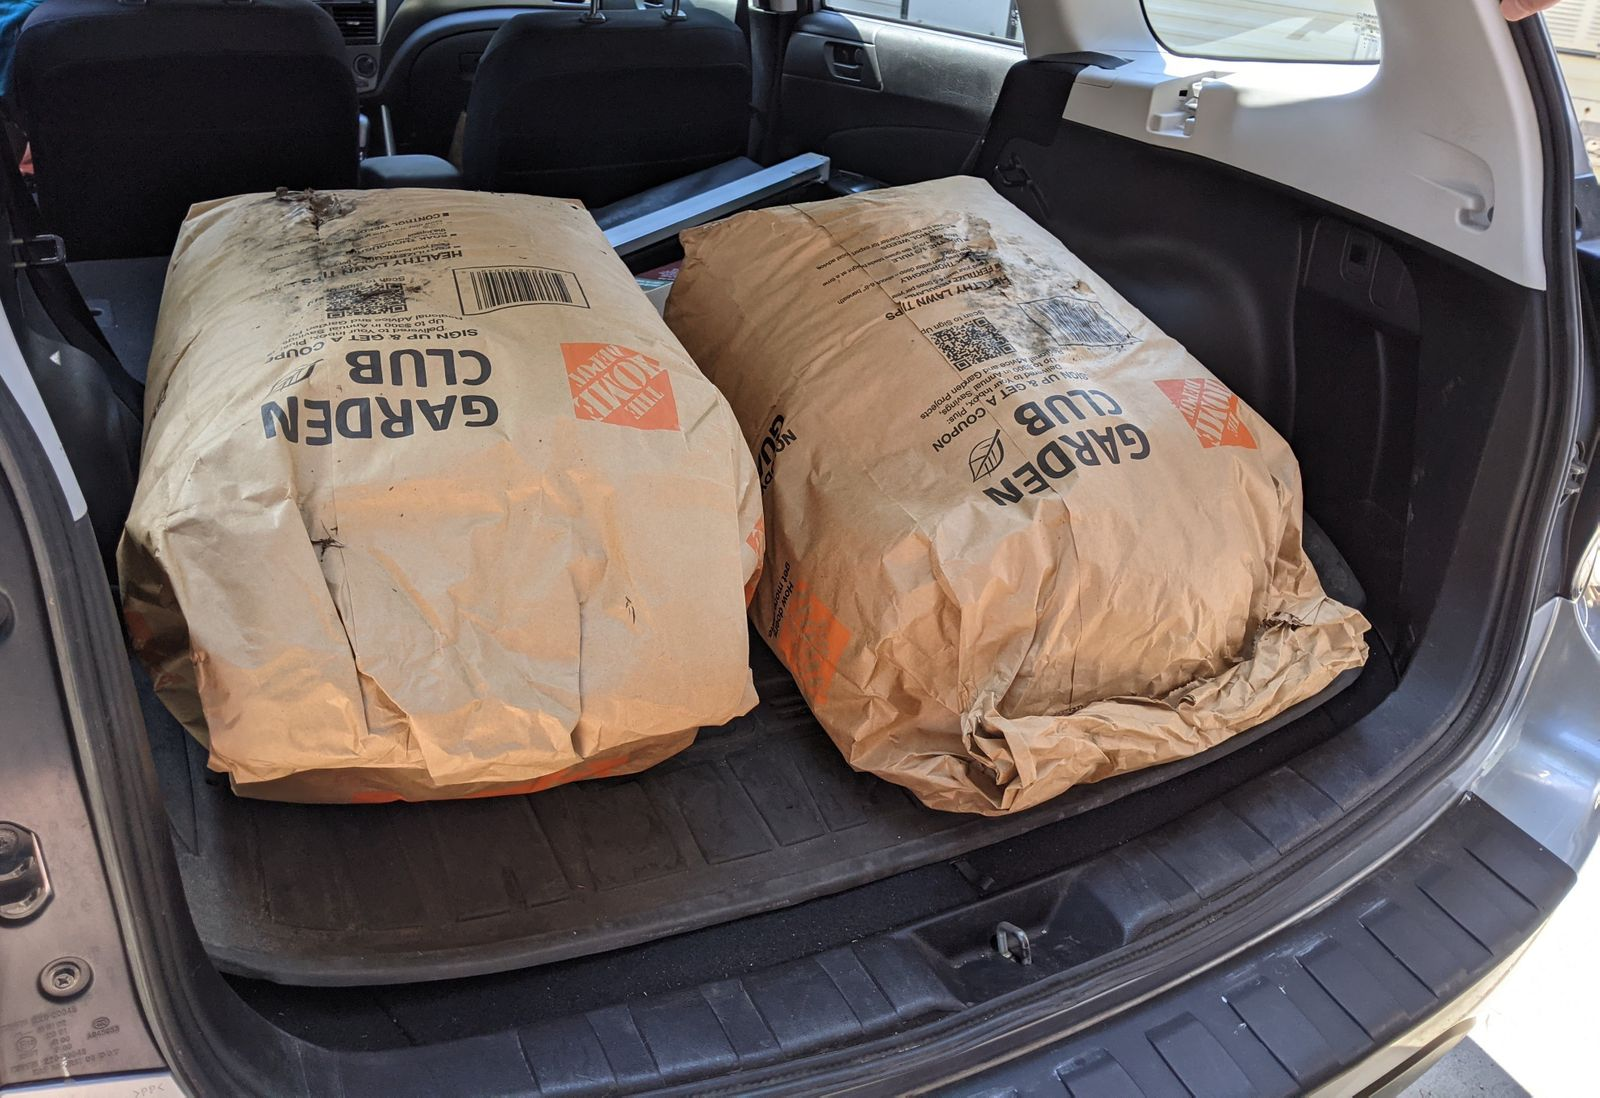 They could have fit all four bags in here to begin with, but they were cautious with their mulch consumption. I, of all people, cannot blame them.